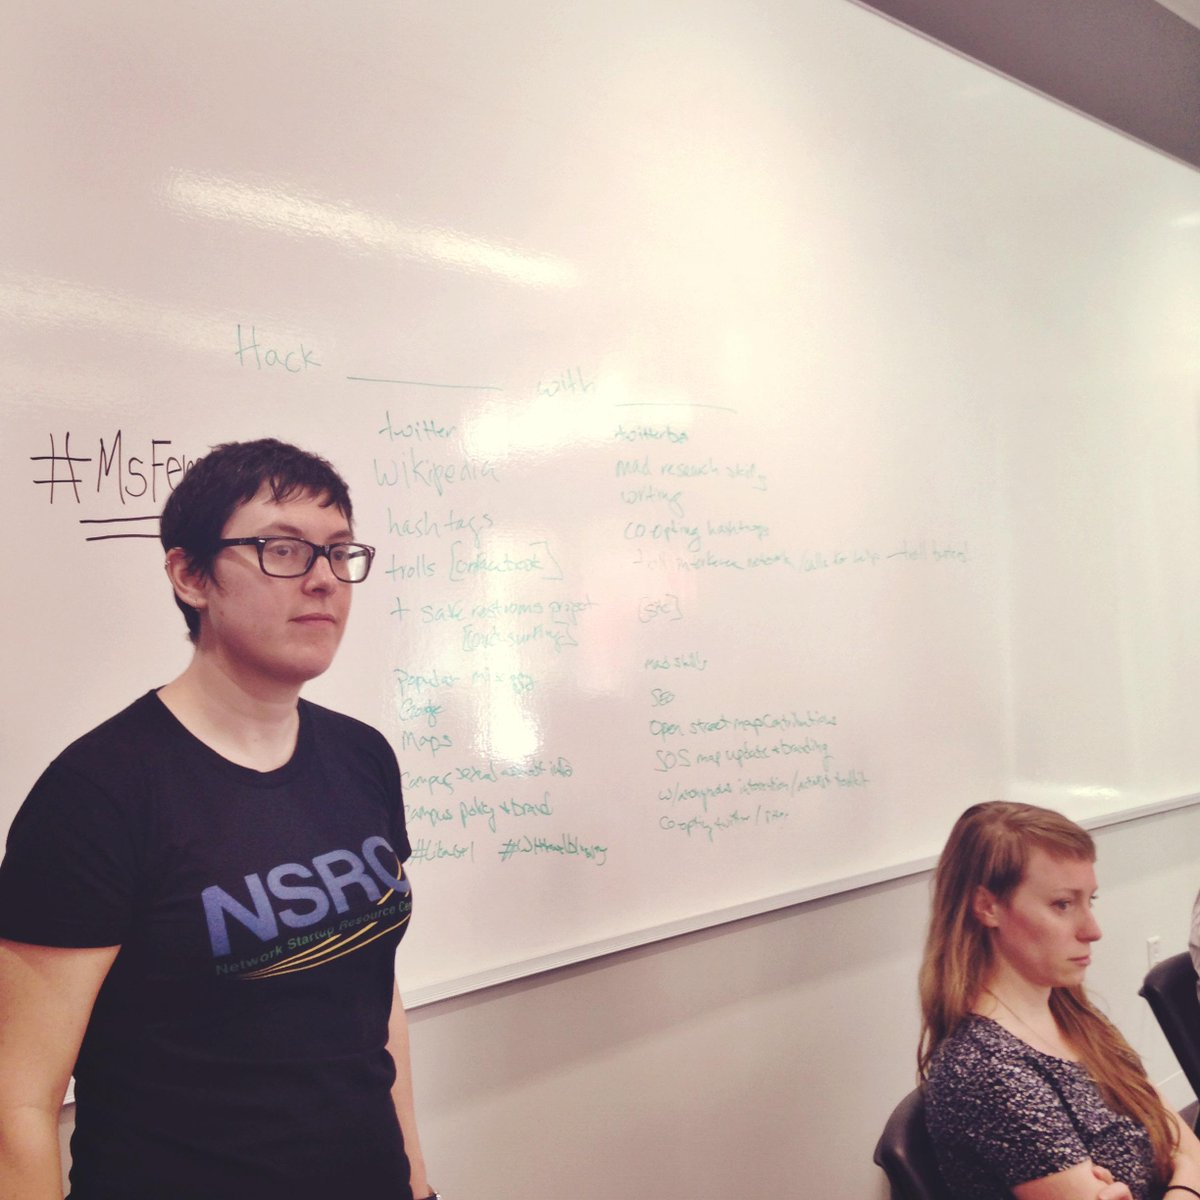 """#MsFembot Hack-a-Thon: """"Trolls over here, SOS Map there, Google bombing there -- let the hacking begin!"""" http://t.co/eGDU52BkM5"""